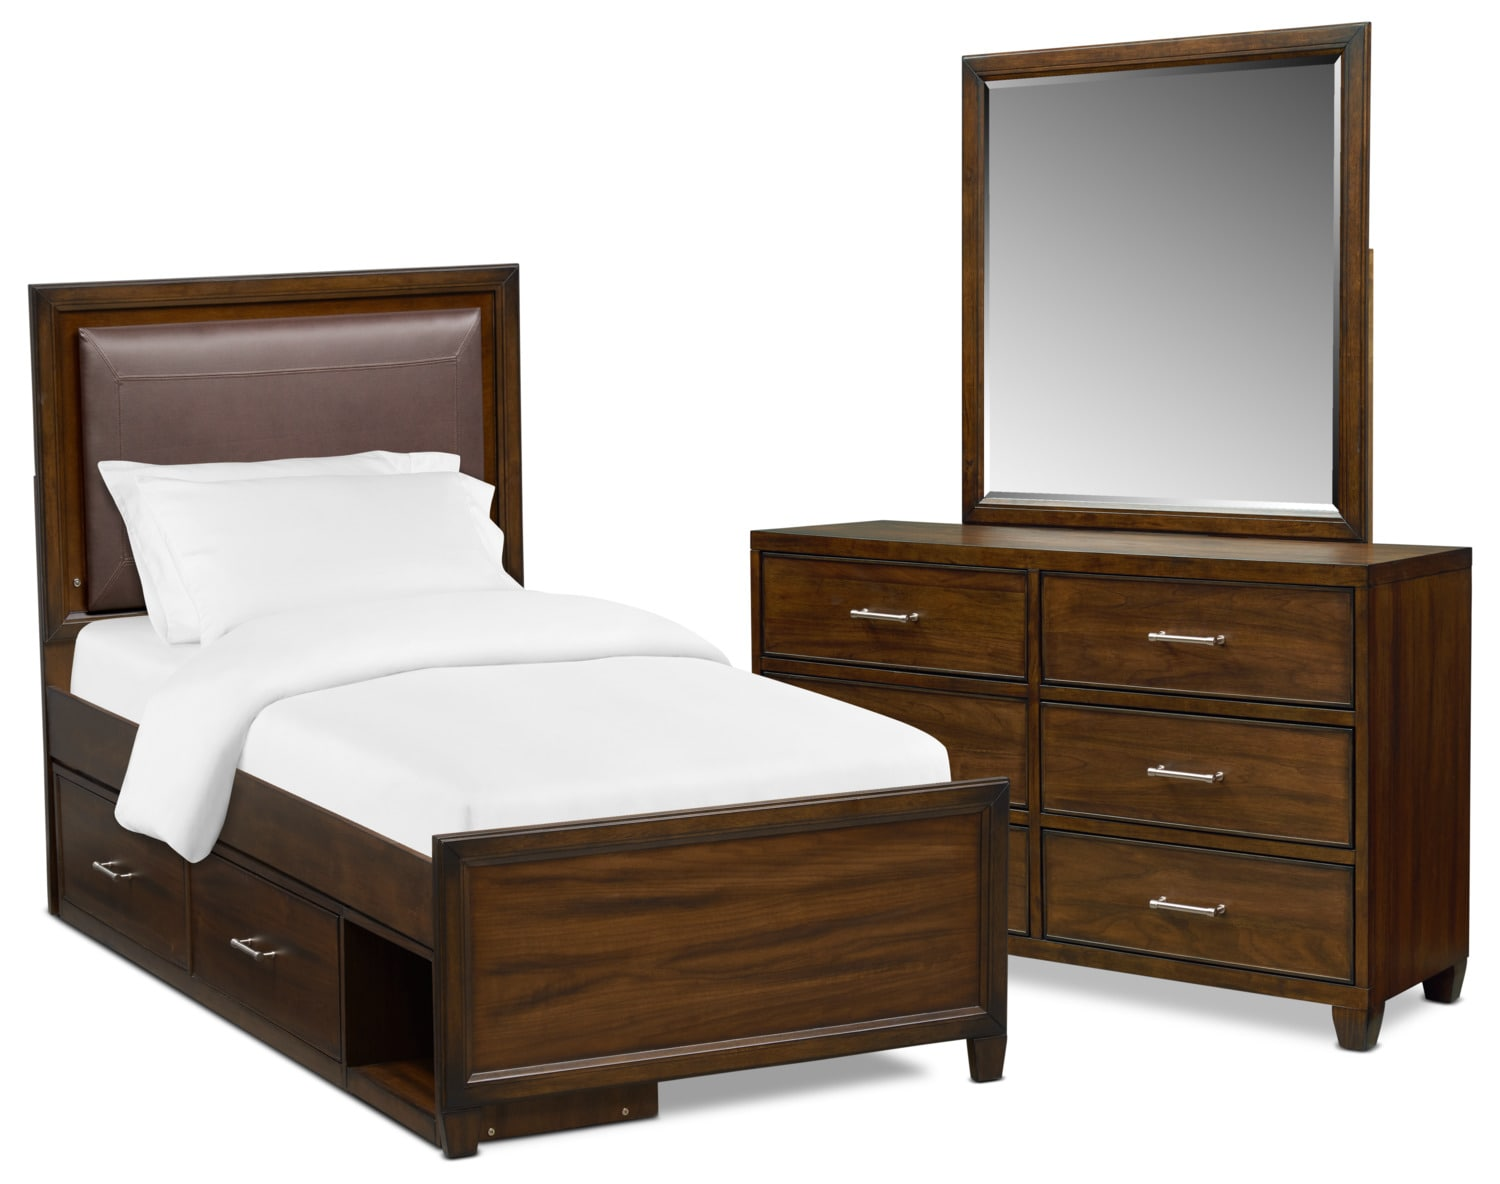 Sullivan 5-Piece Upholstered Storage Bedroom Set with Dresser and Mirror